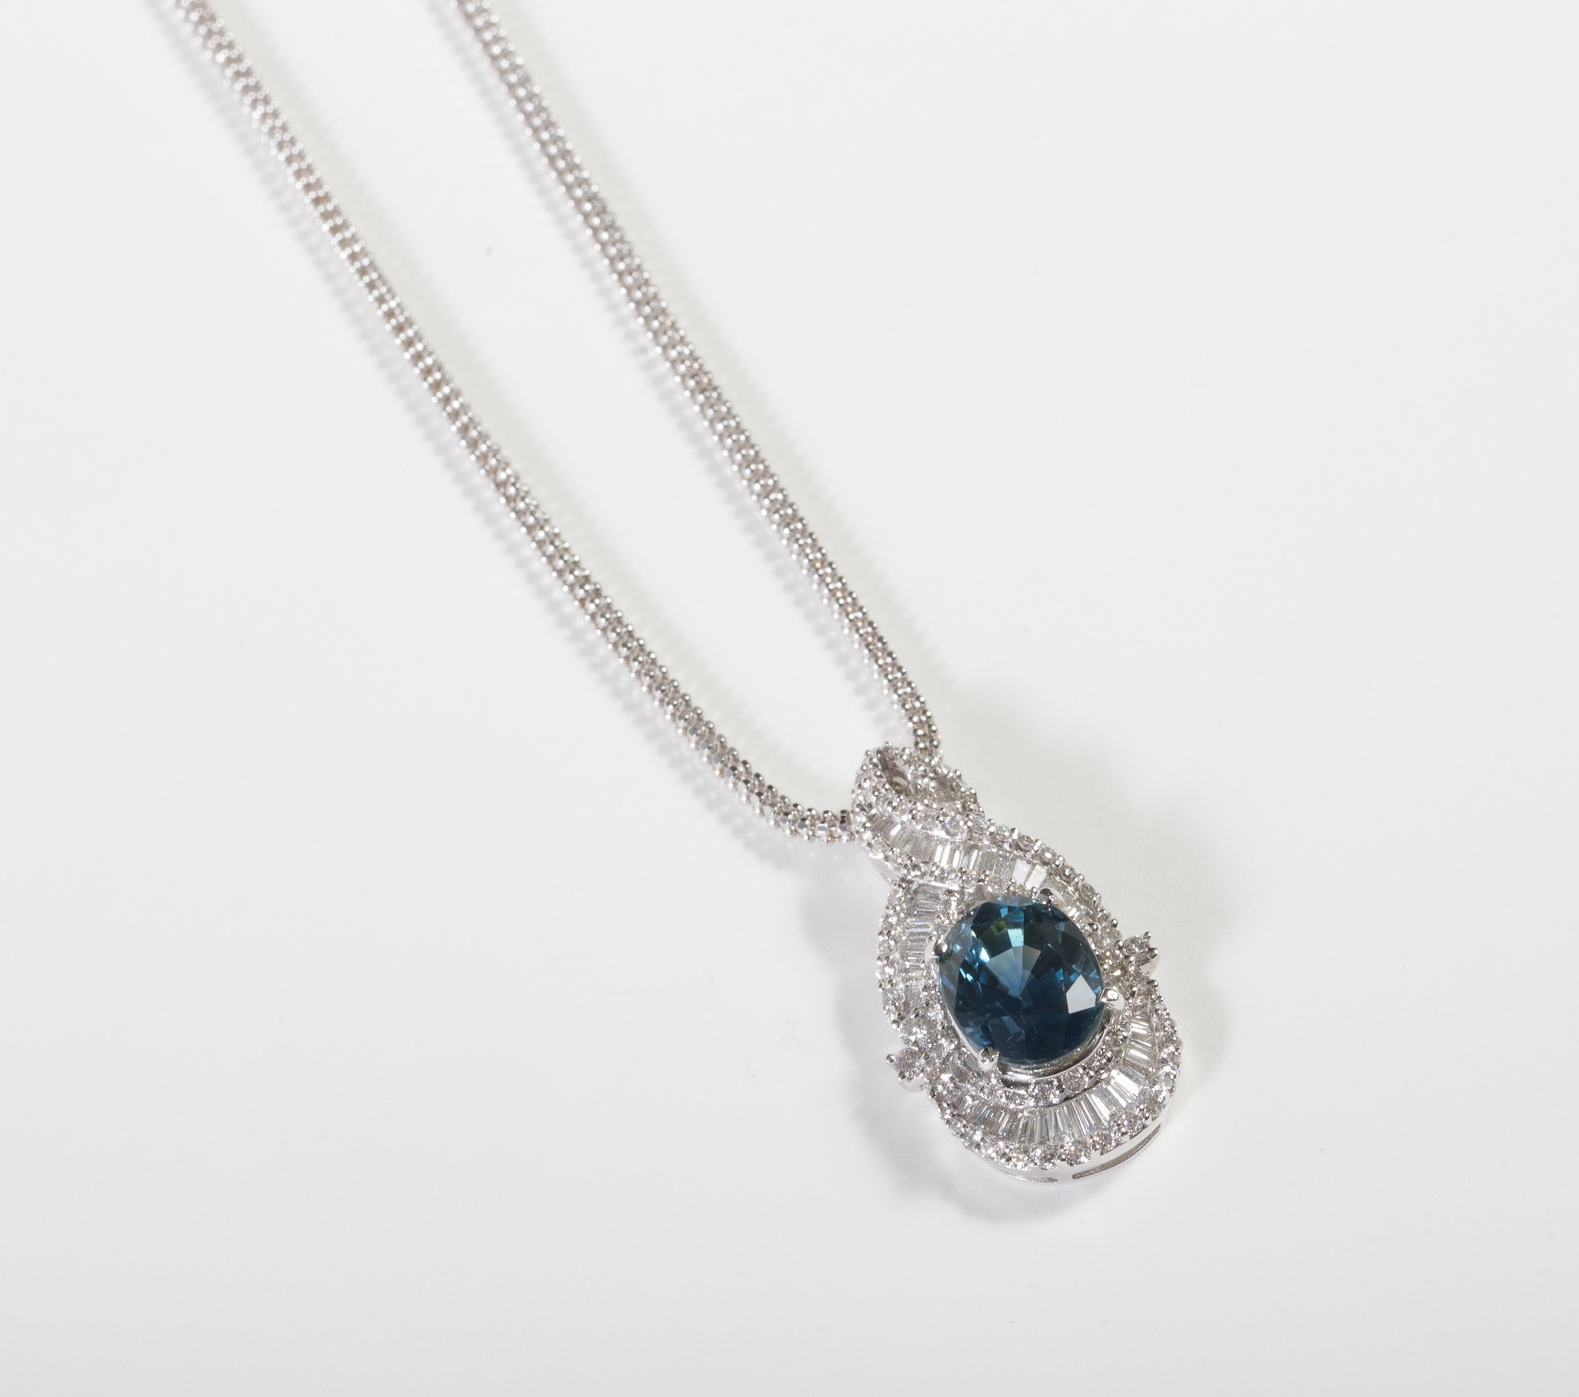 6.31ct Sapphire and Diamond Pendant set in 18k White Gold $9,900